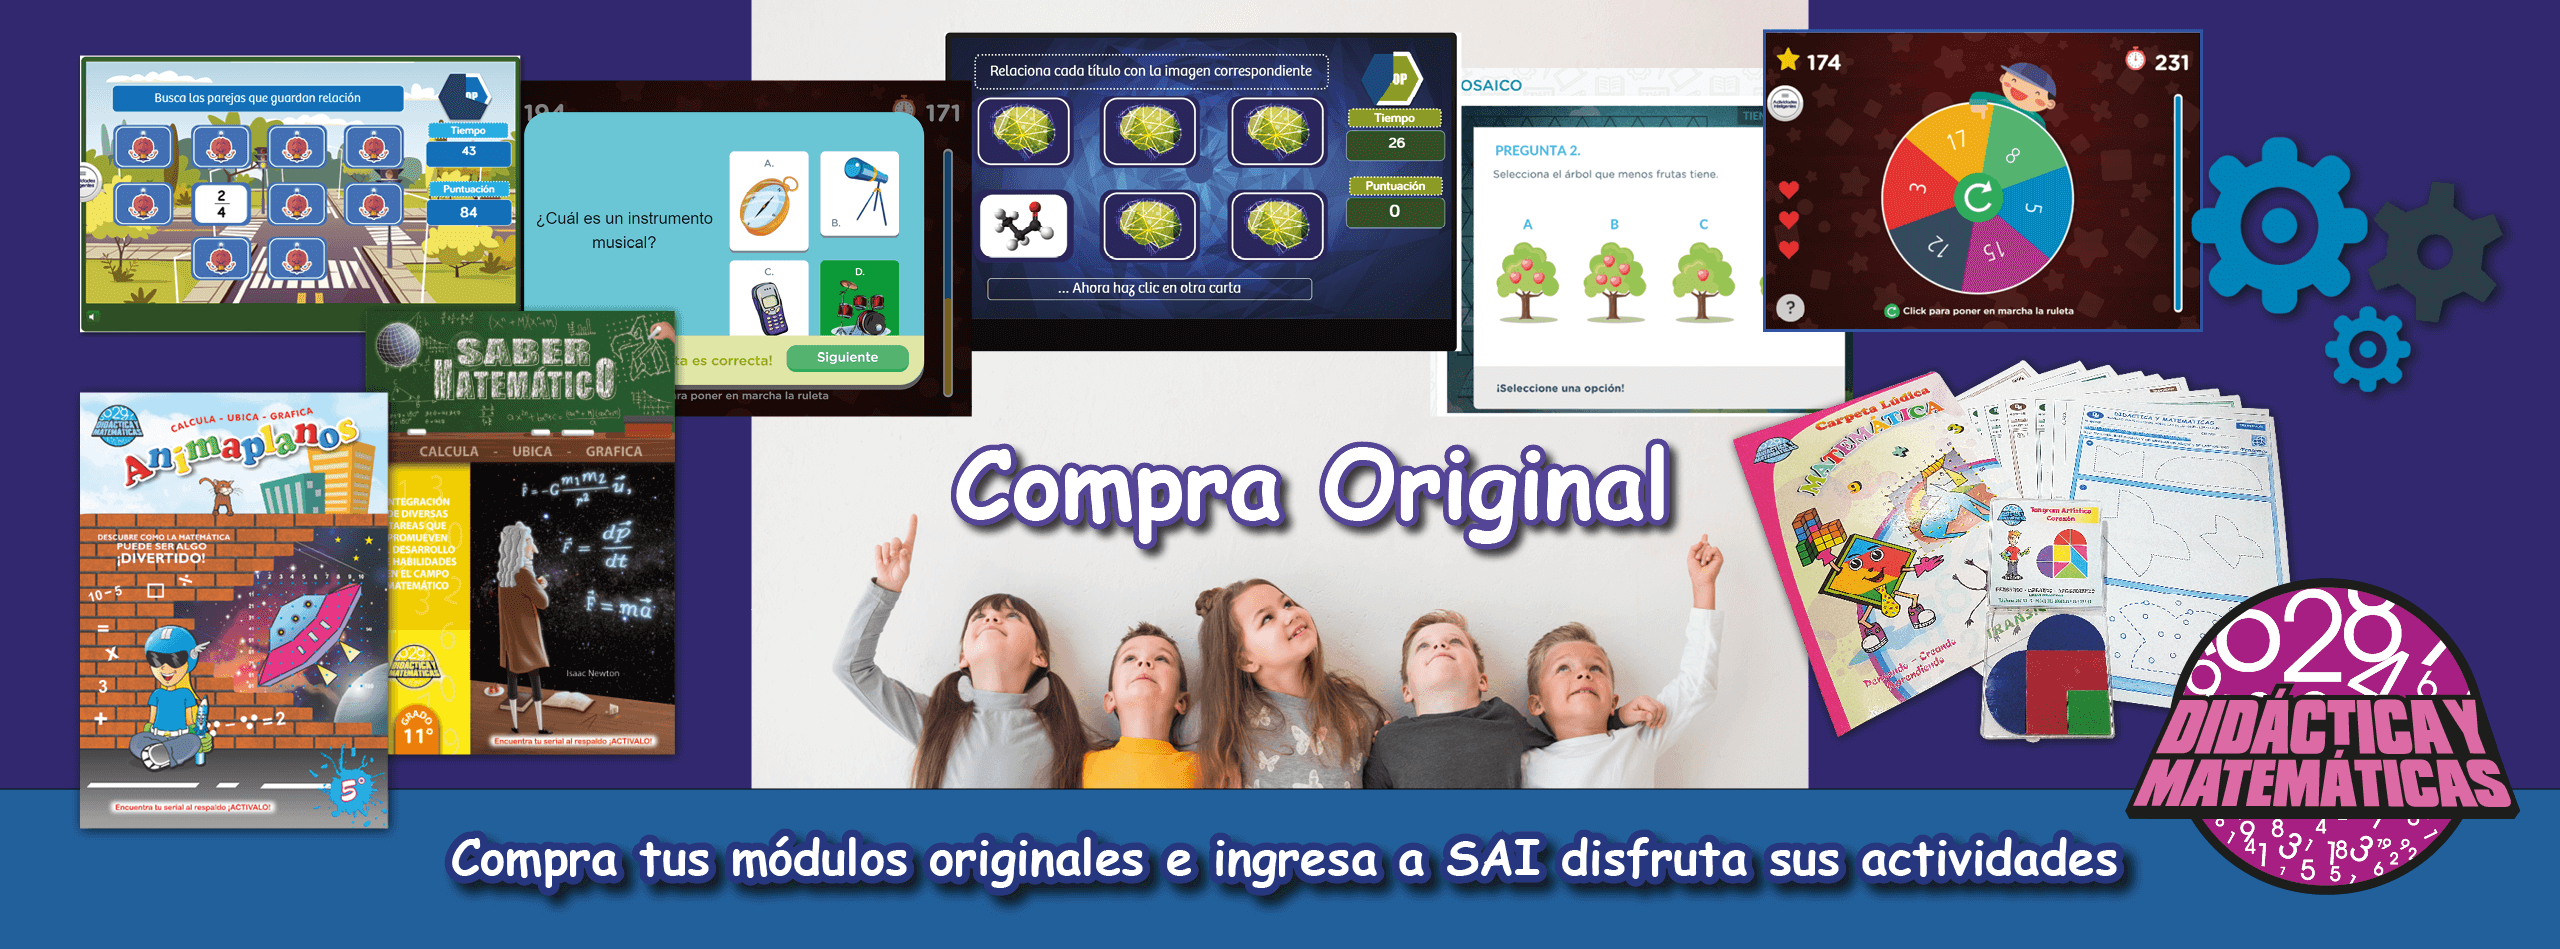 sai-compra-original-act-digitales6